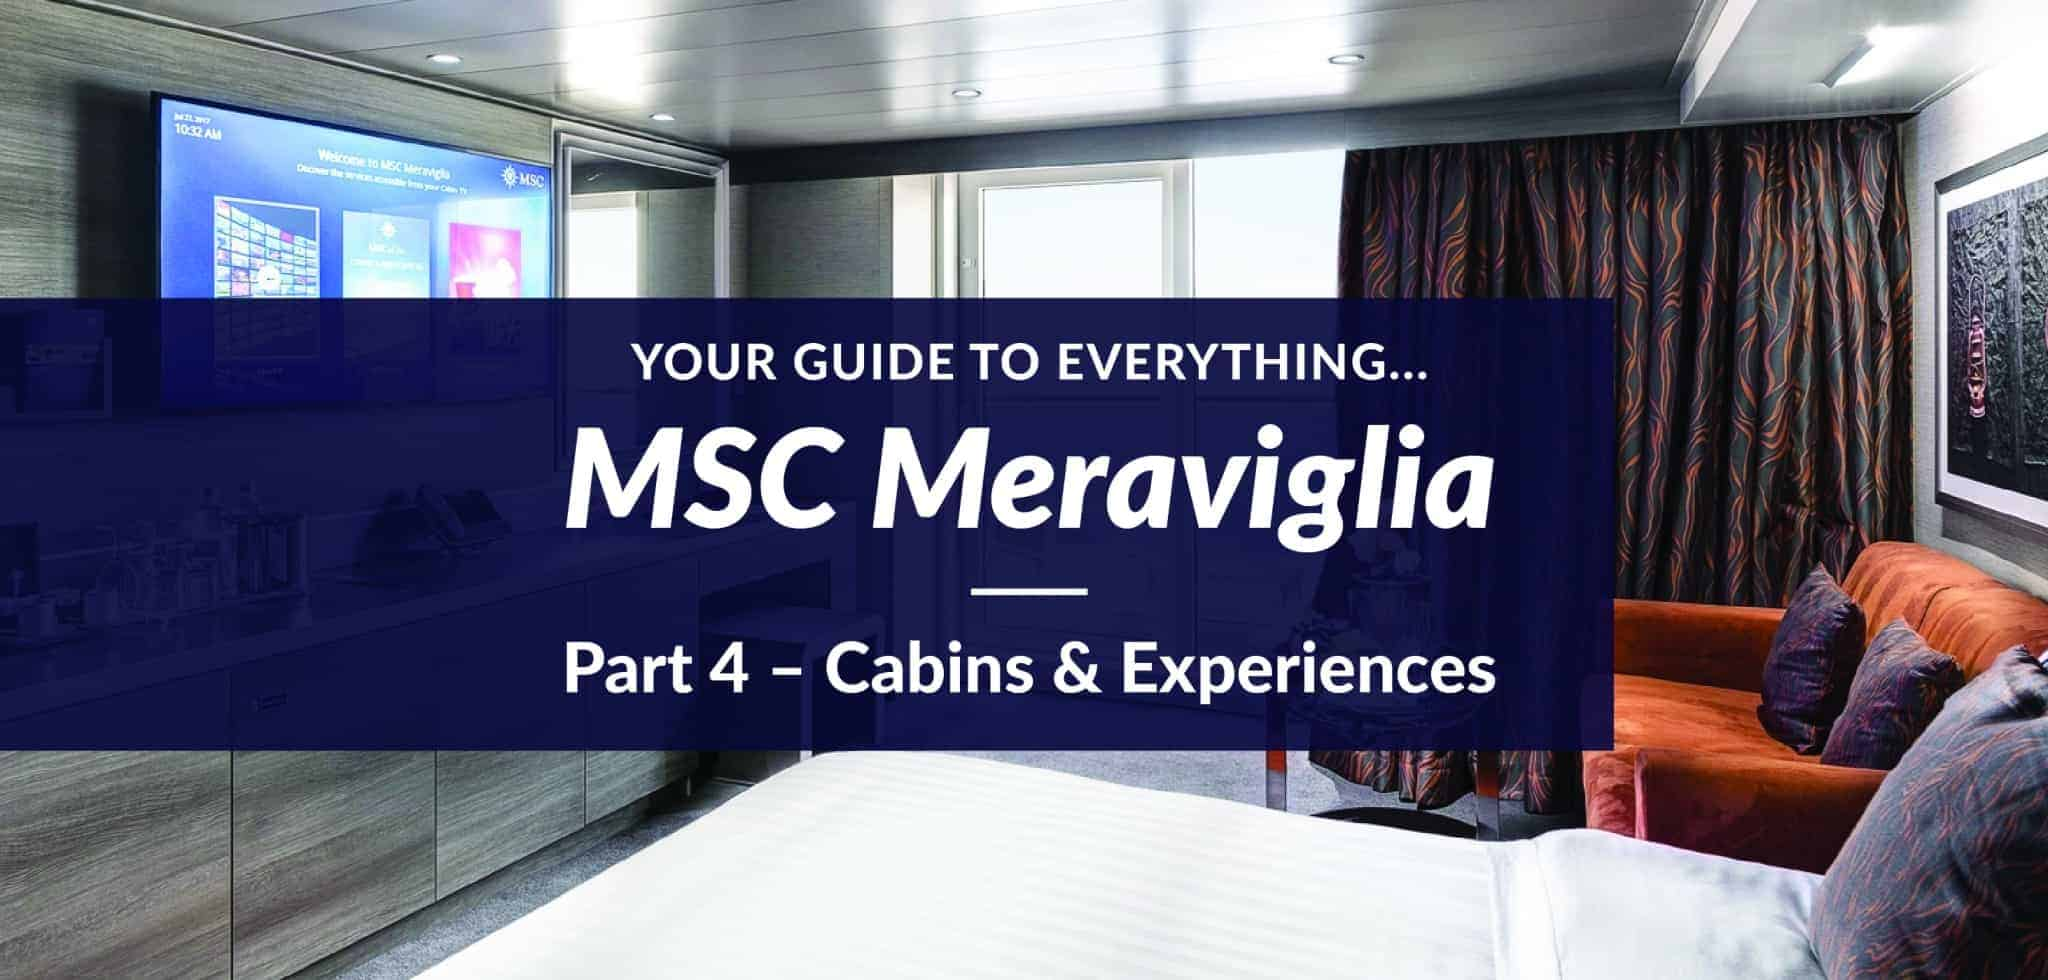 MSC Meraviglia Cabins and Experiences Guide